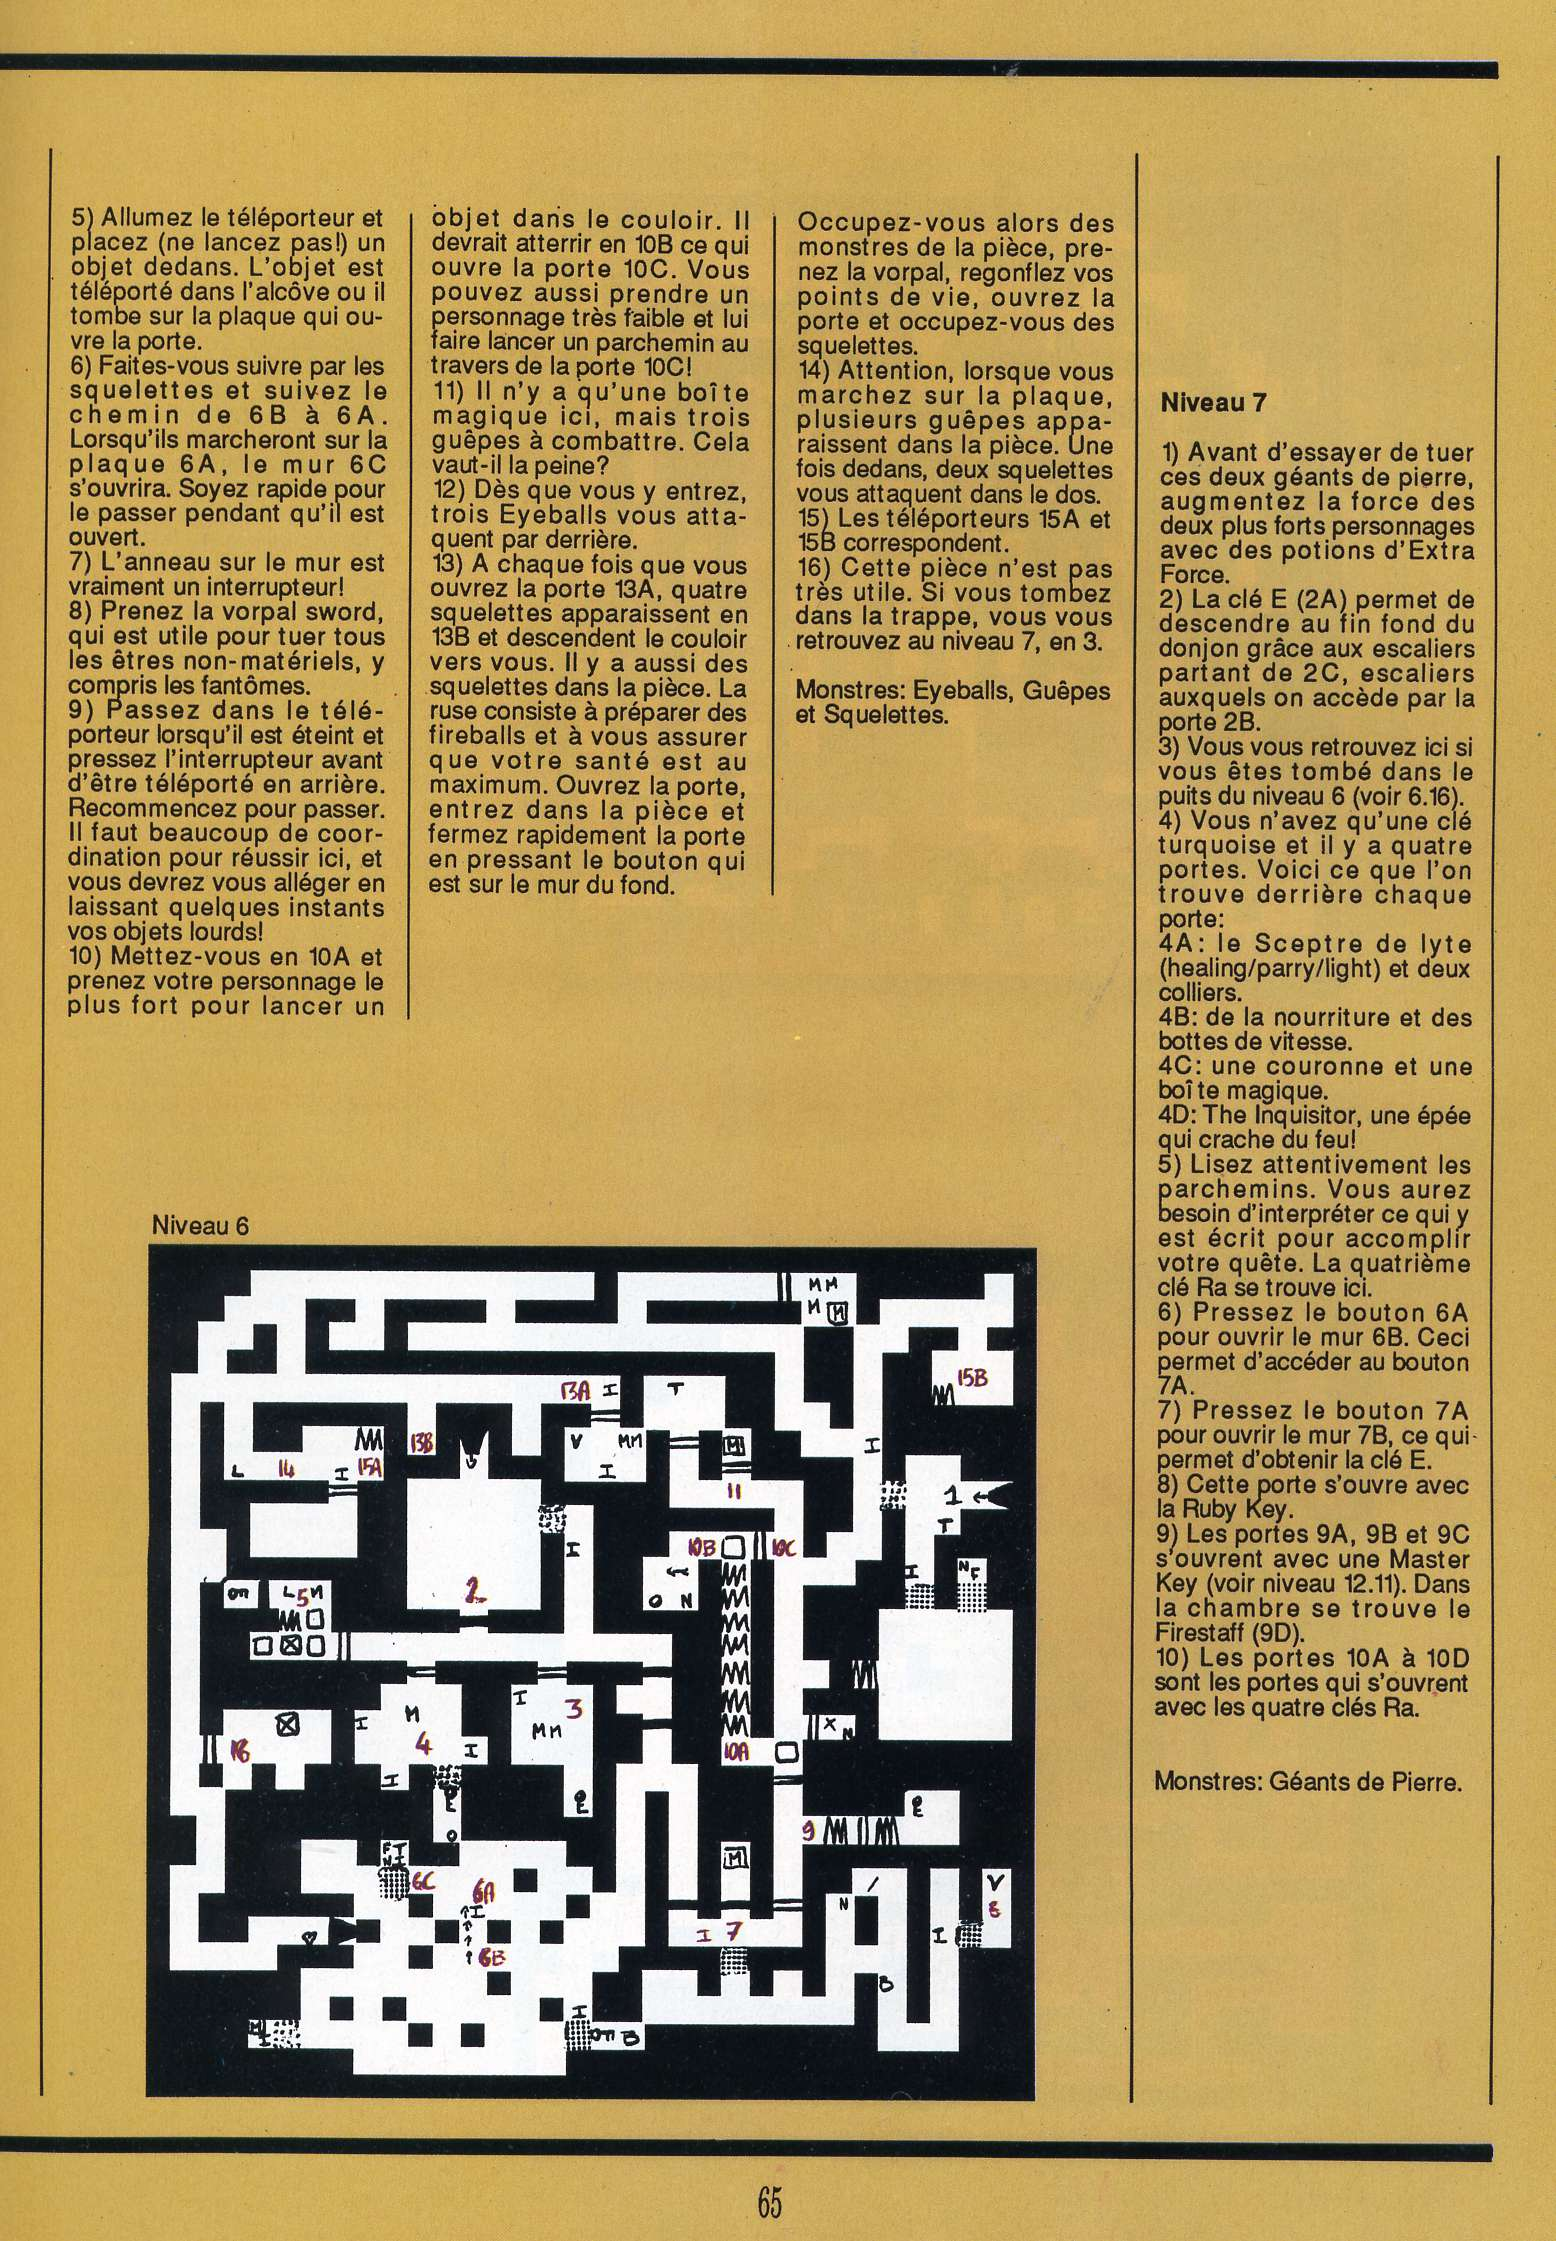 Dungeon Master for Atari ST Guide published in French magazine 'Gen4', Issue #9, March 1989, Page 65